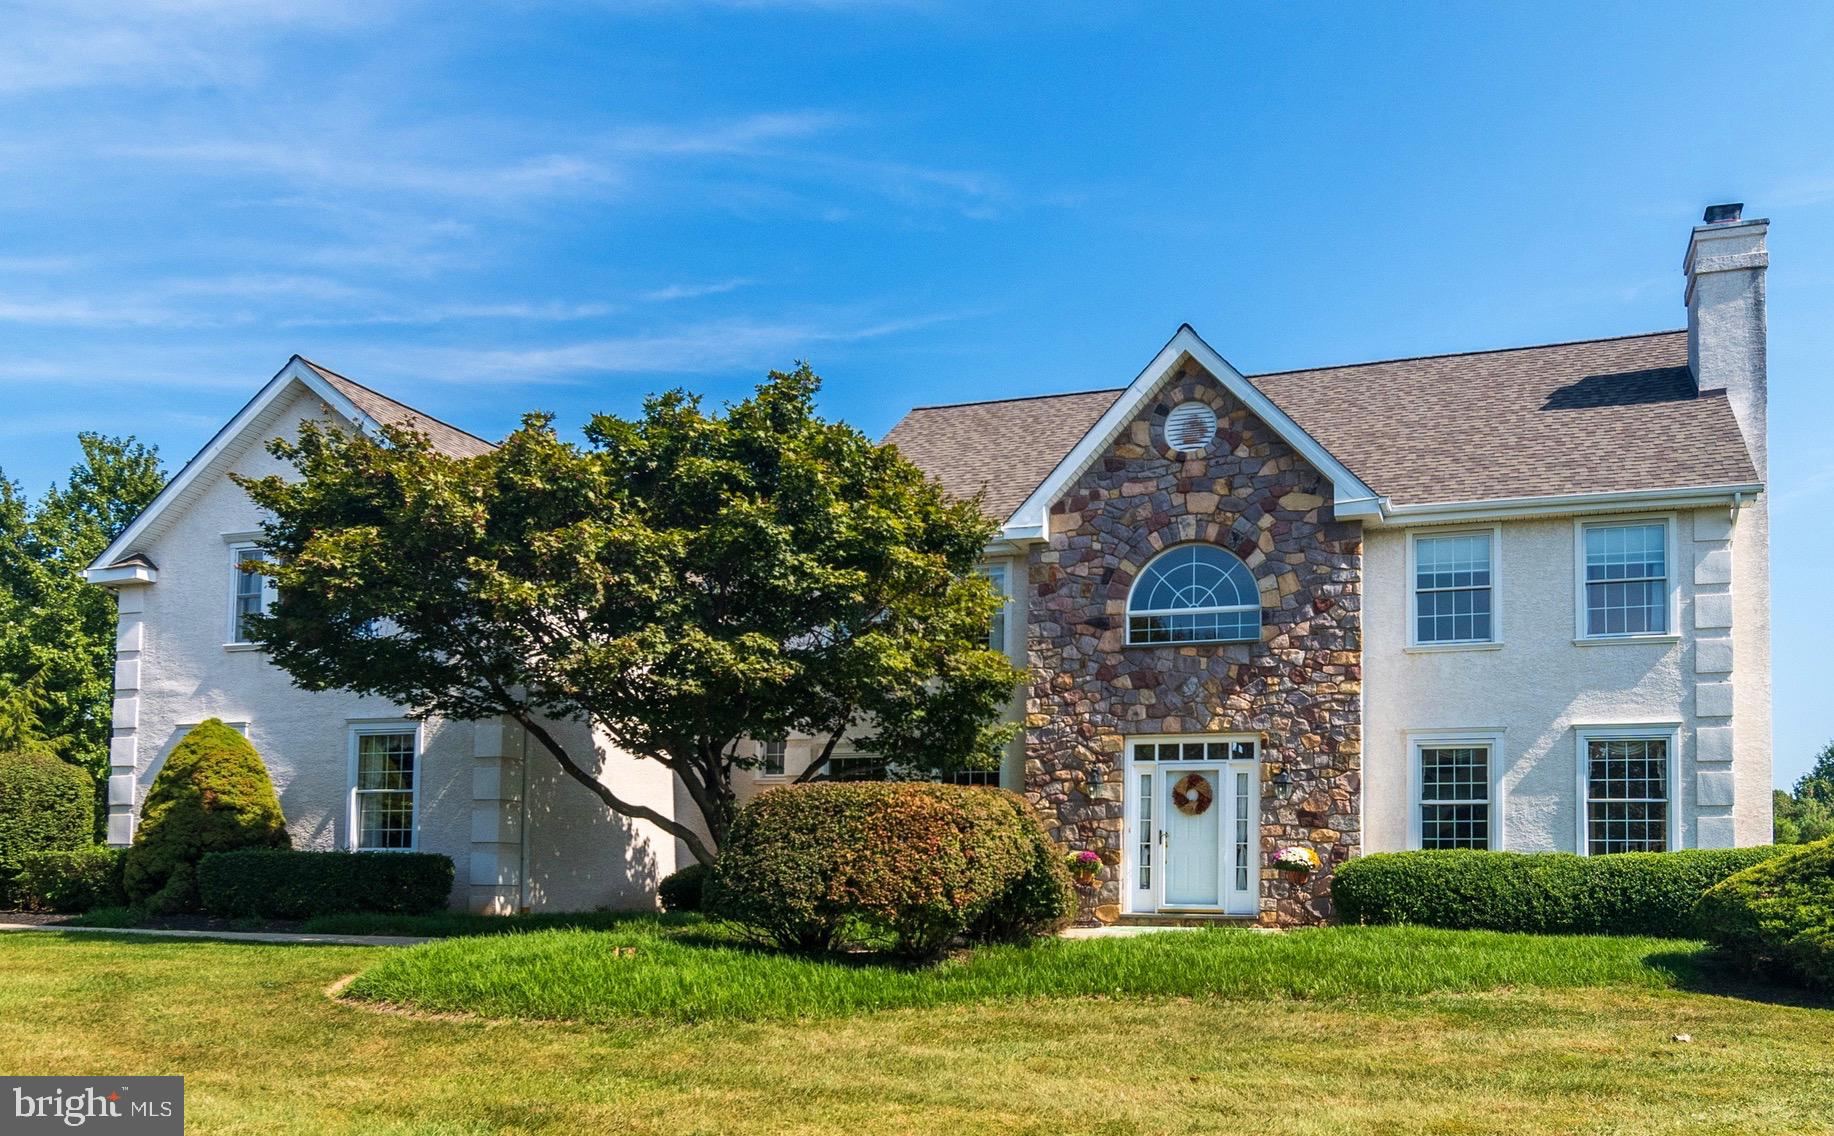 2577 COLD SPRING ROAD, LANSDALE, PA 19446